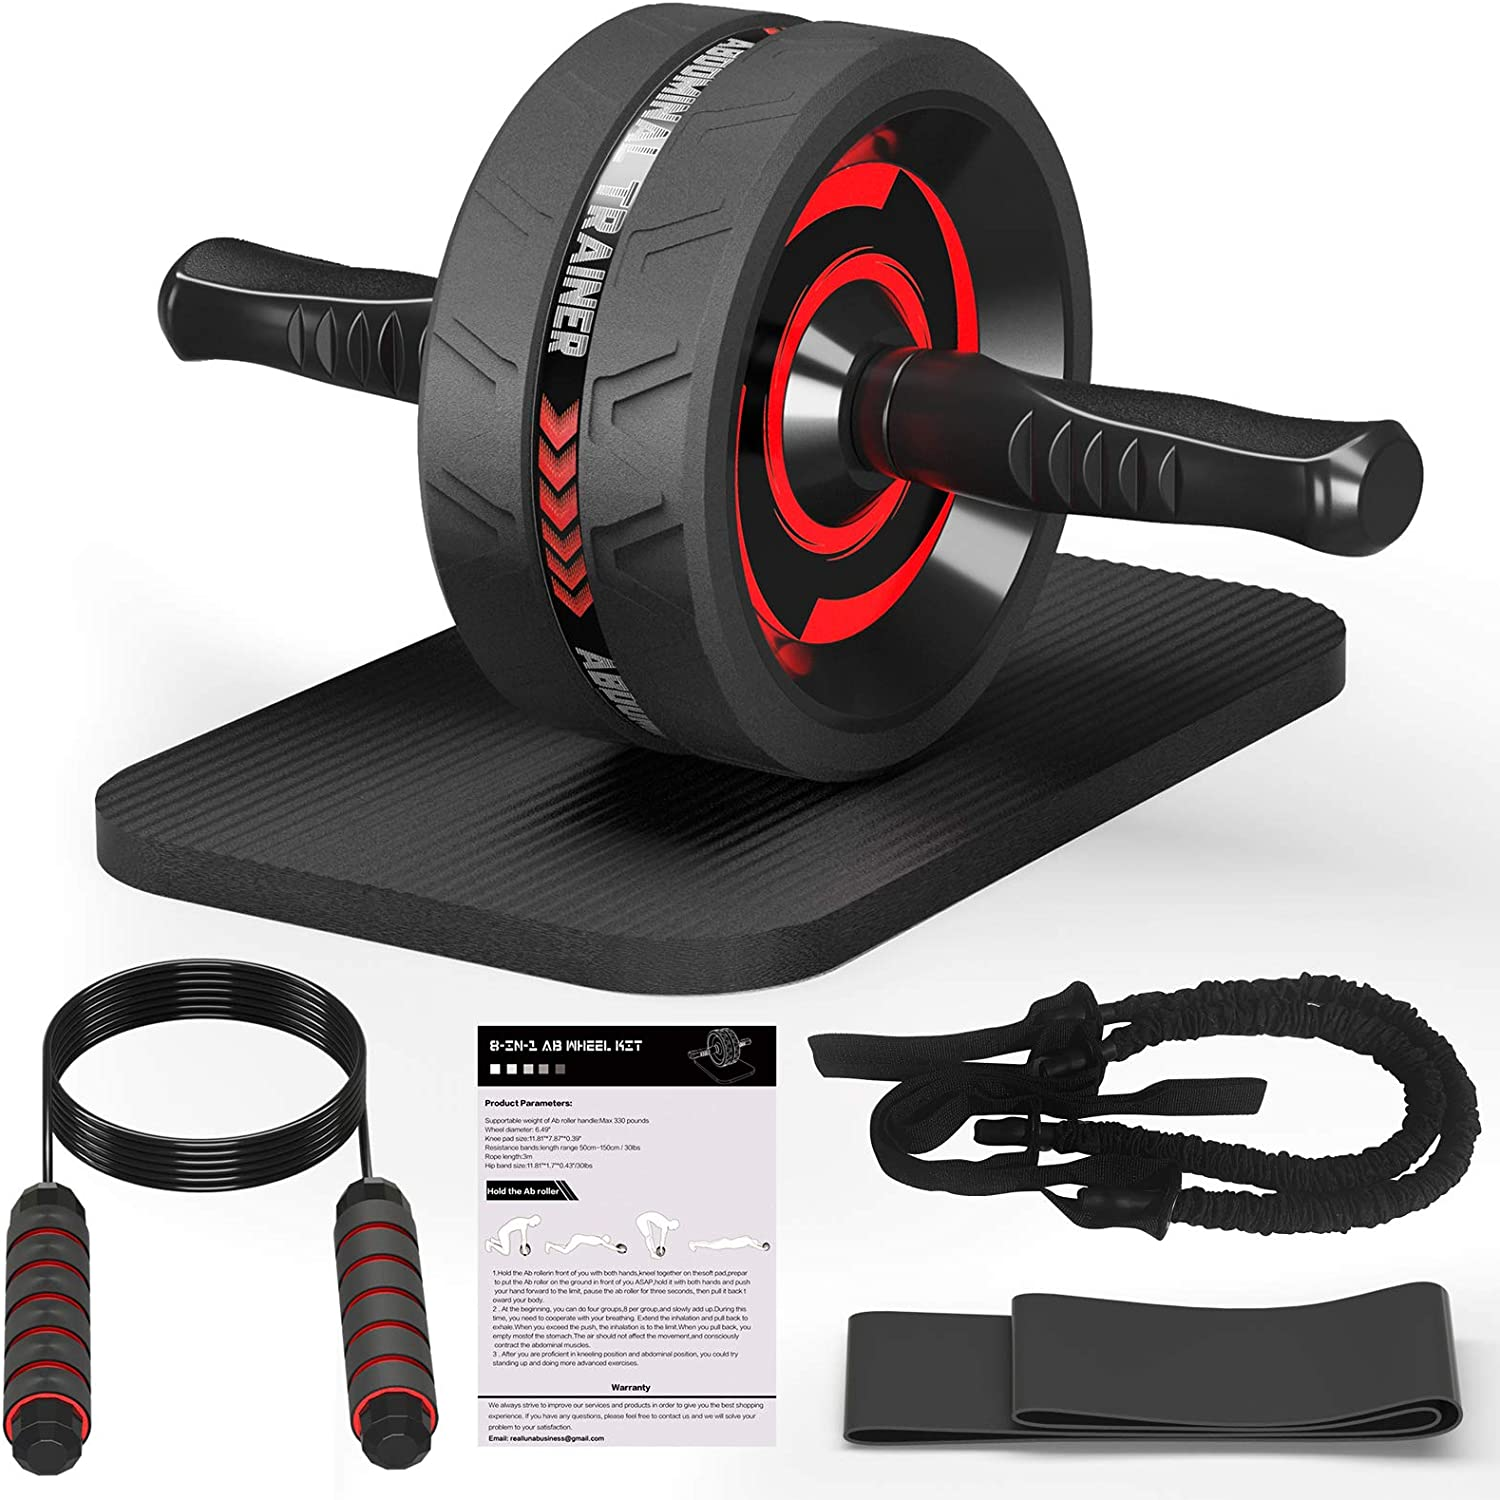 FELICIS 8-in-1 Ab Wheel Roller Fitness Kit, Ab Wheel Exercise Equipment, Sturdy Abs Wheel Roller for Home Abs Workout, Gym Abdominal Stimulator for Men/Women, Knee Pad/Jumprope/Resistance Bands